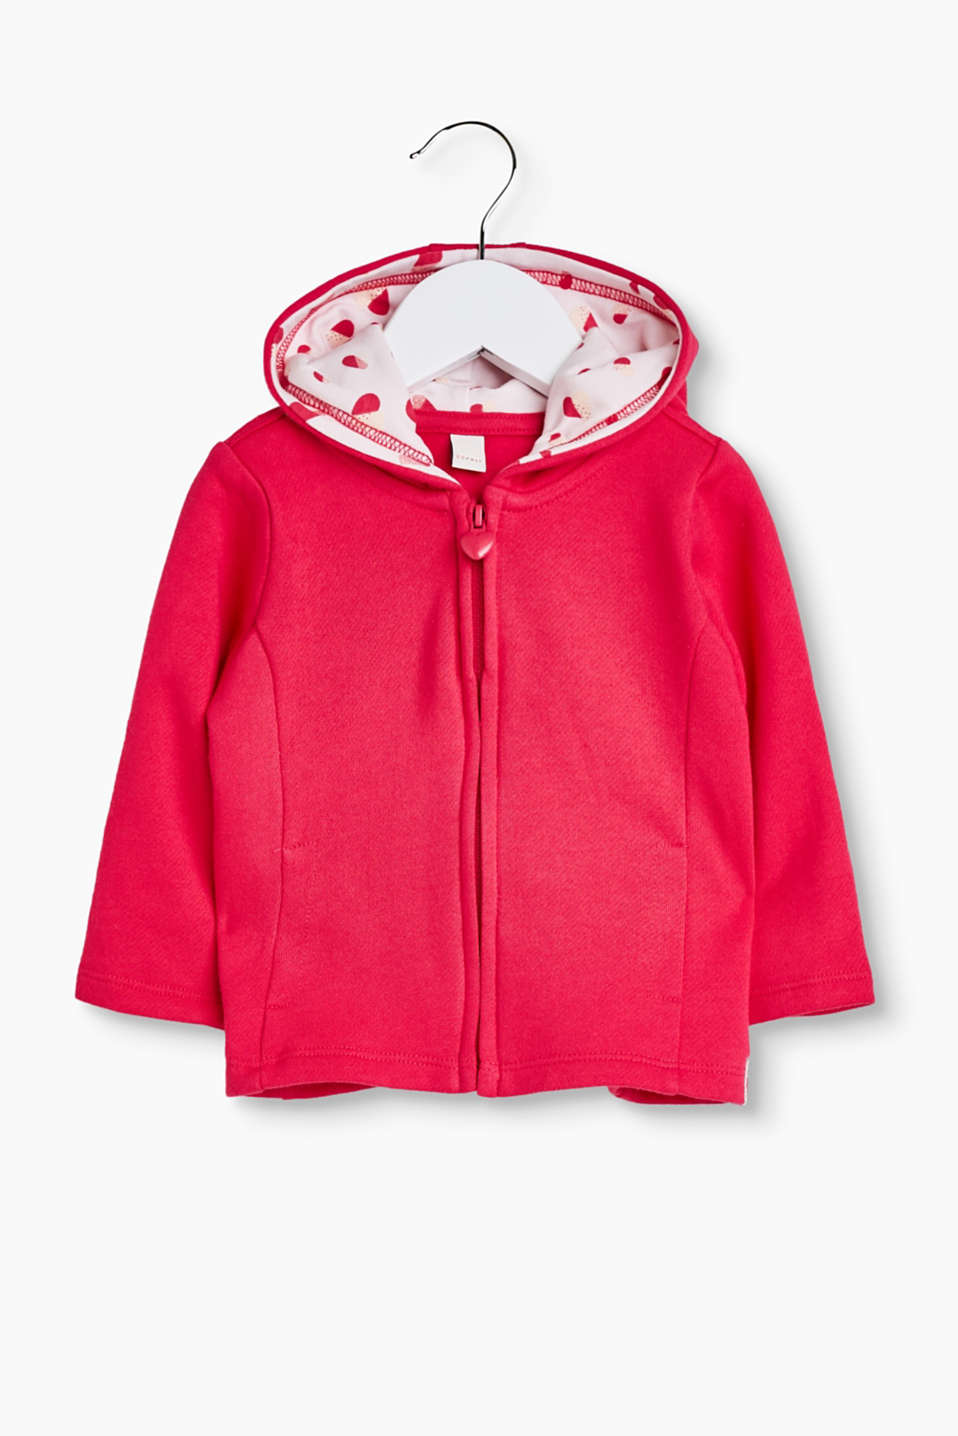 with a heart-shaped zip pull and glittery, printed lining in the hood